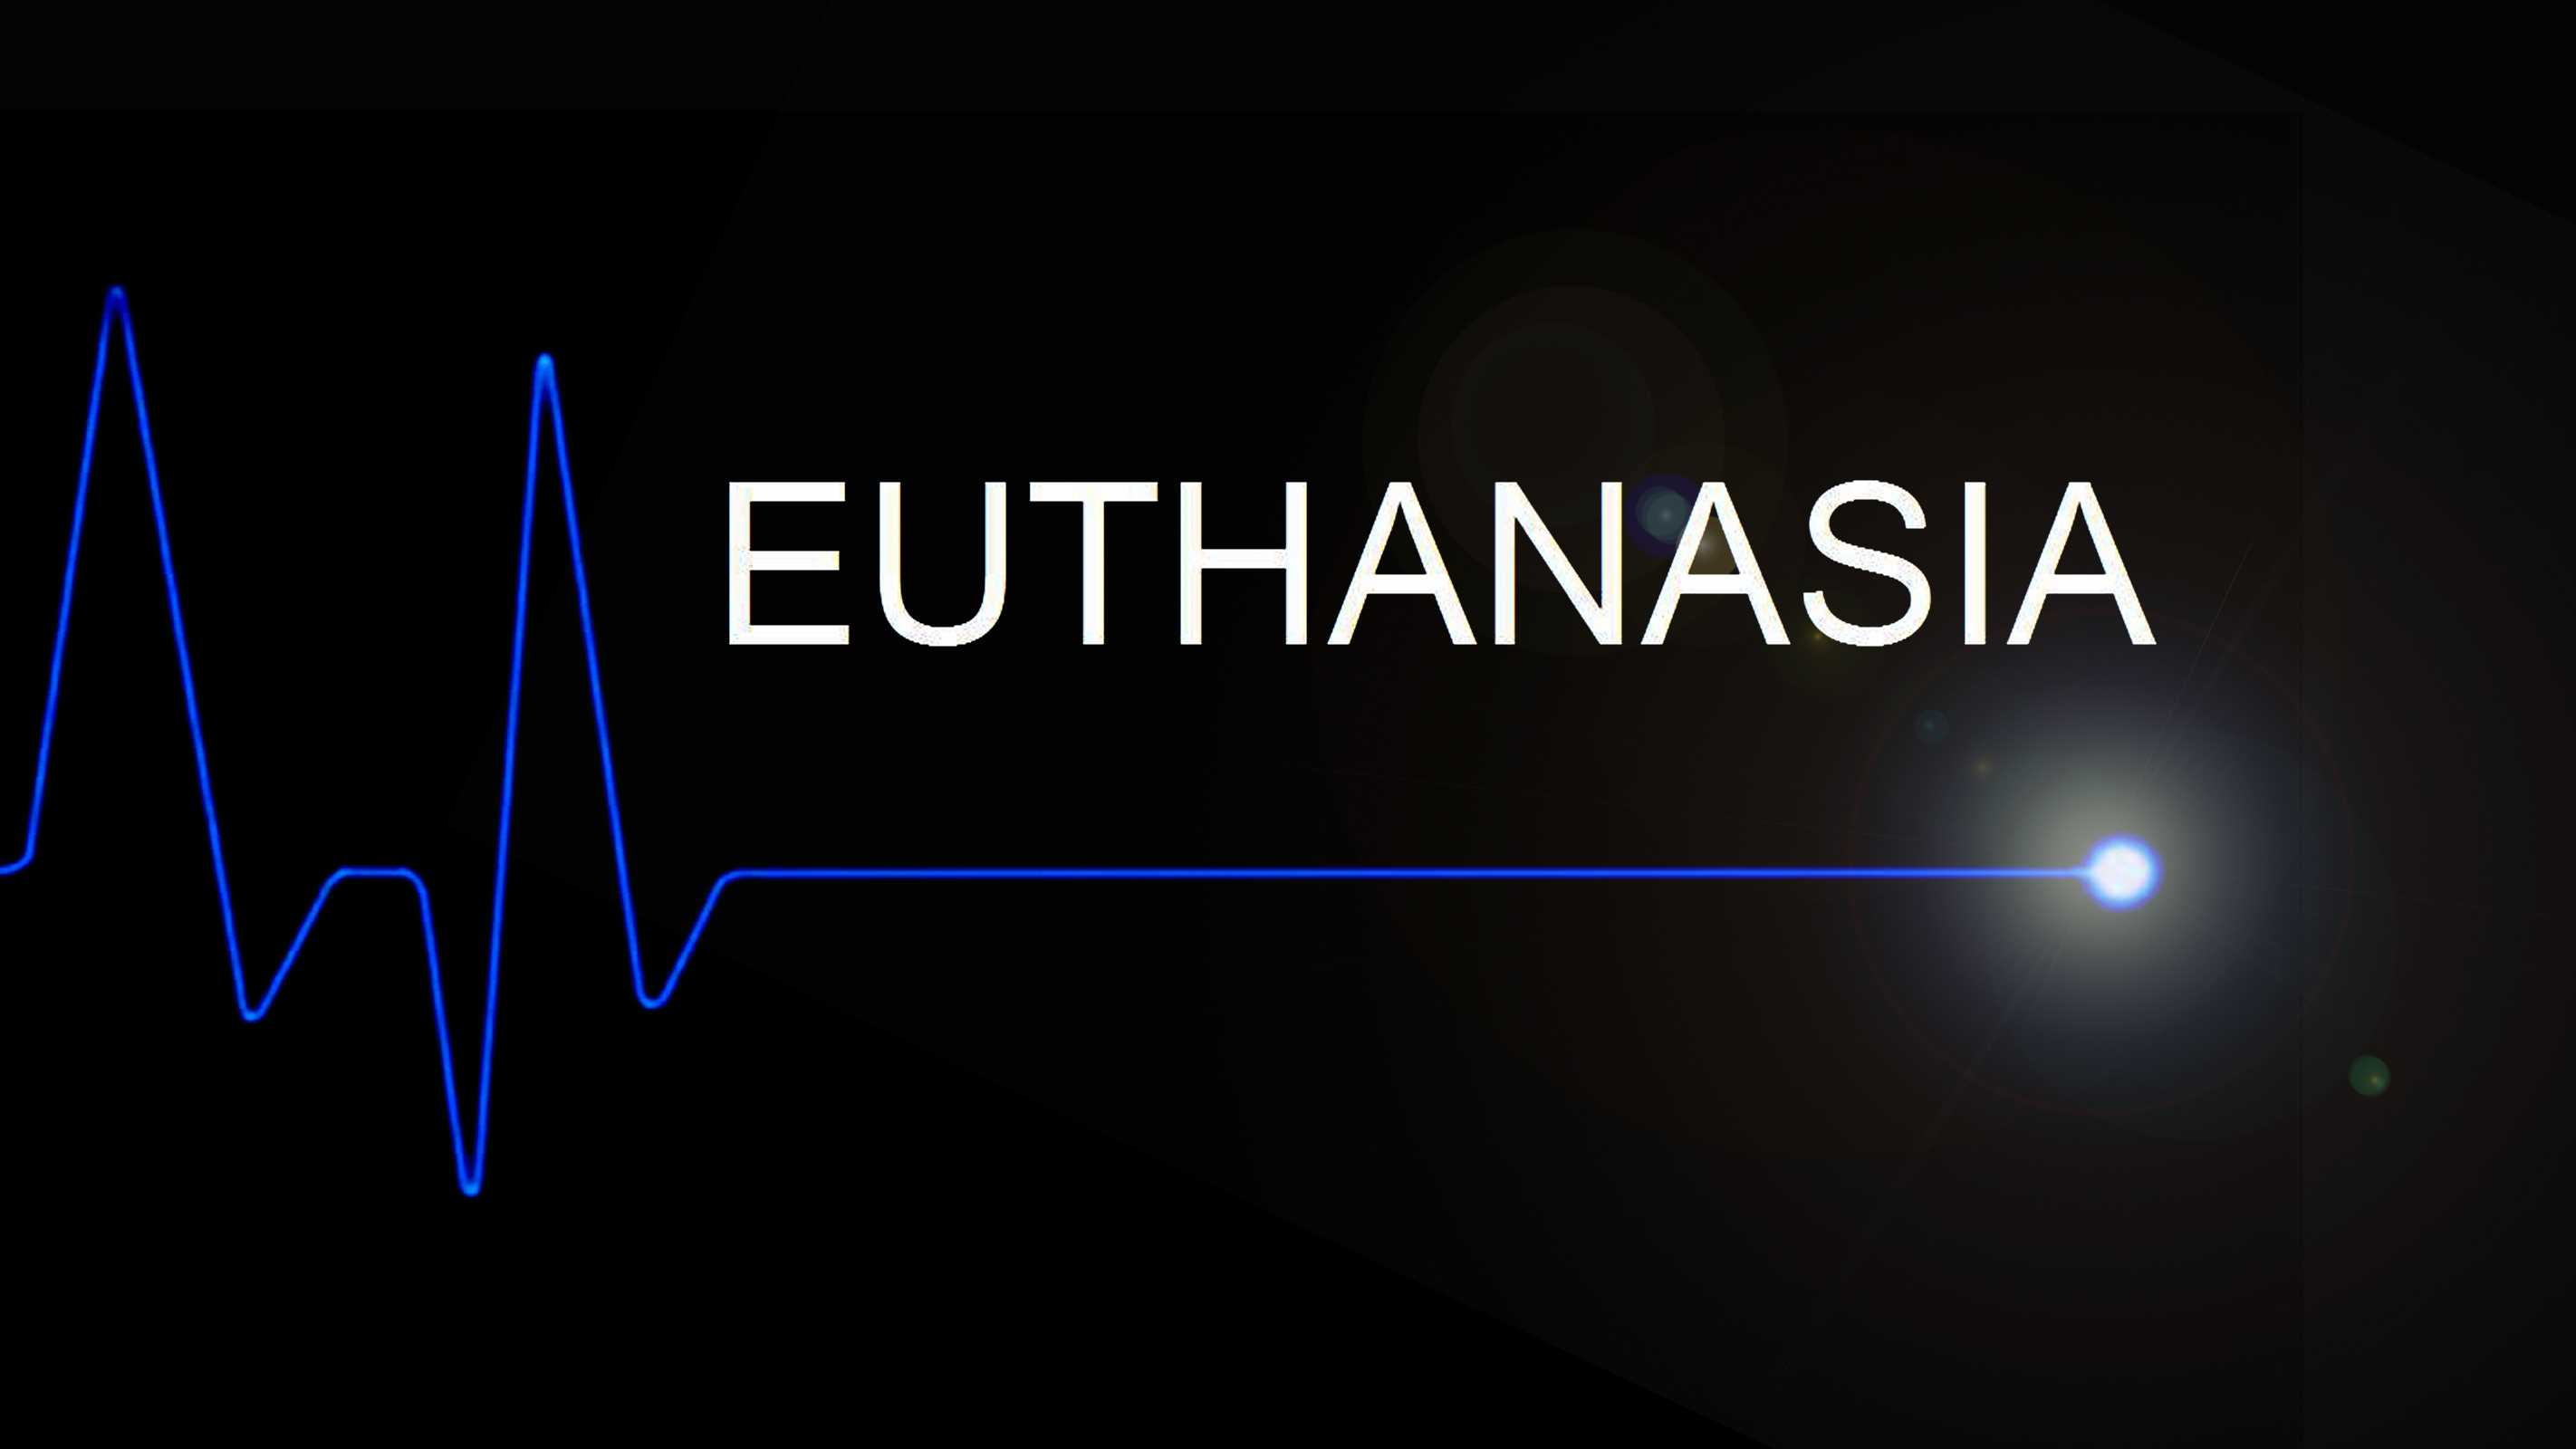 the fight to legalise euthanasia in Should euthanasia(mercy killing) be legalized in india discuss should euthanasia(mercy killing) be legalized in india within the hot debates - the big fight.